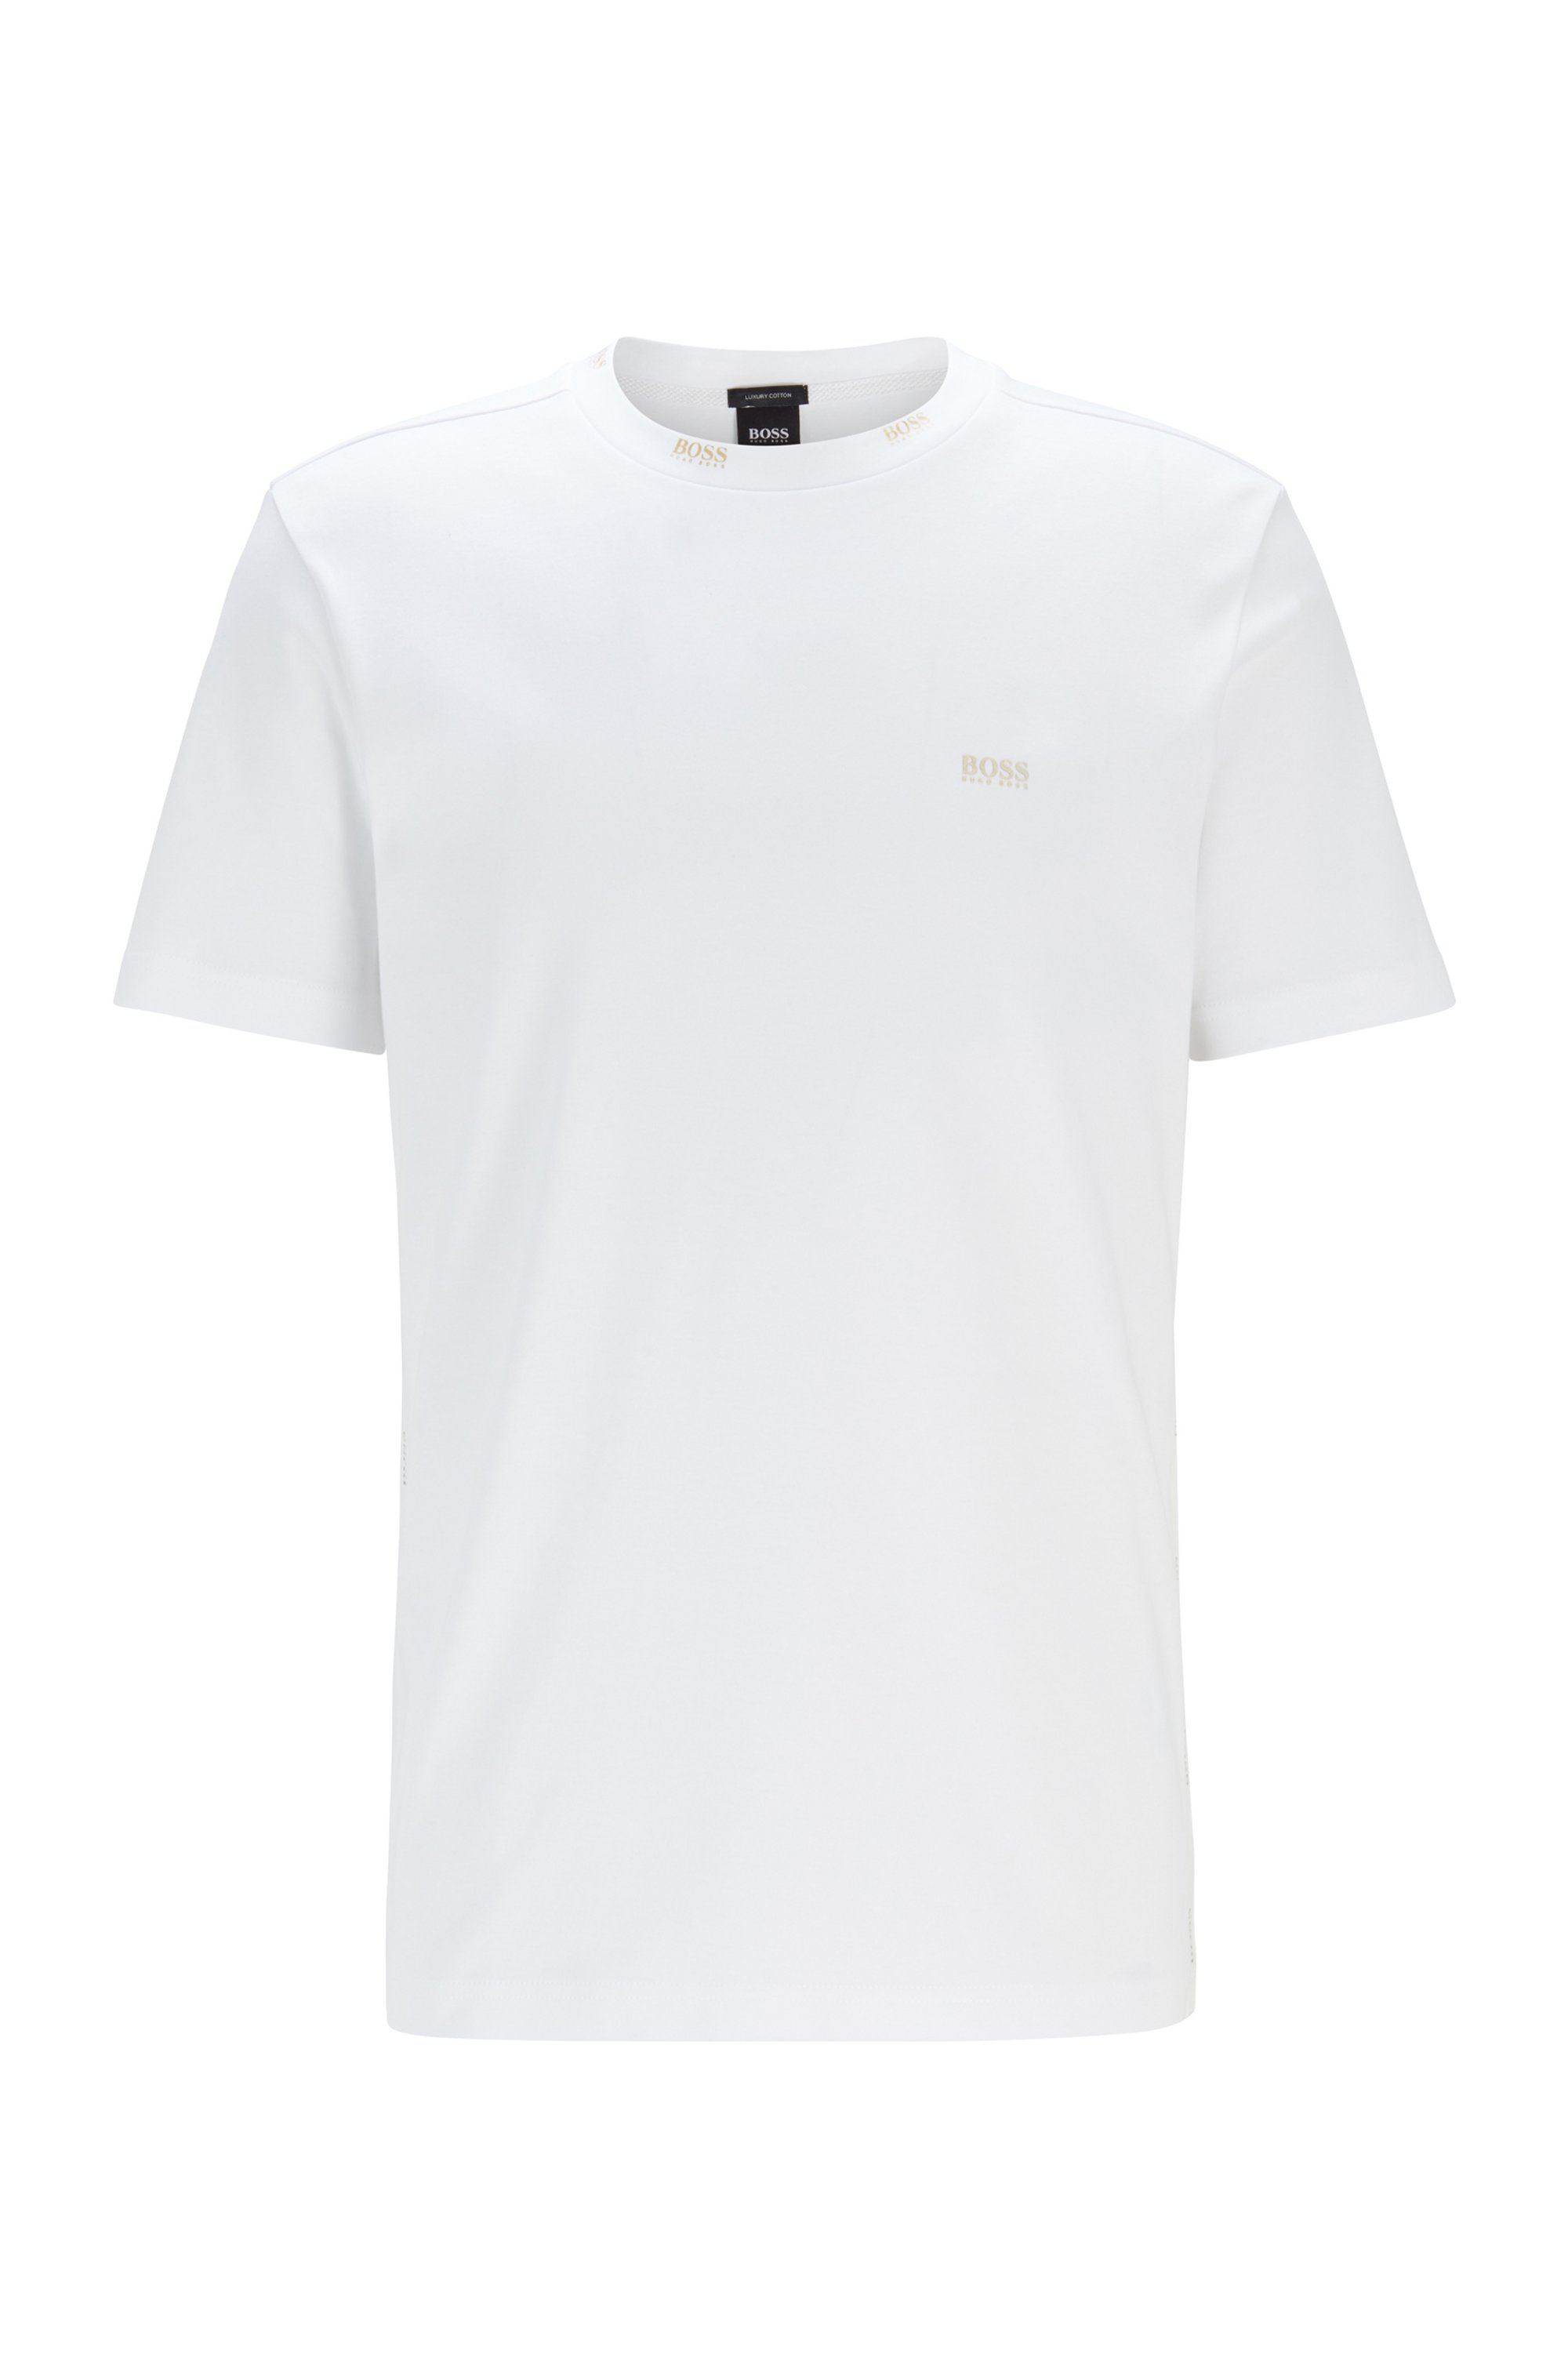 T-shirt Regular Fit orné de logos dorés, Blanc